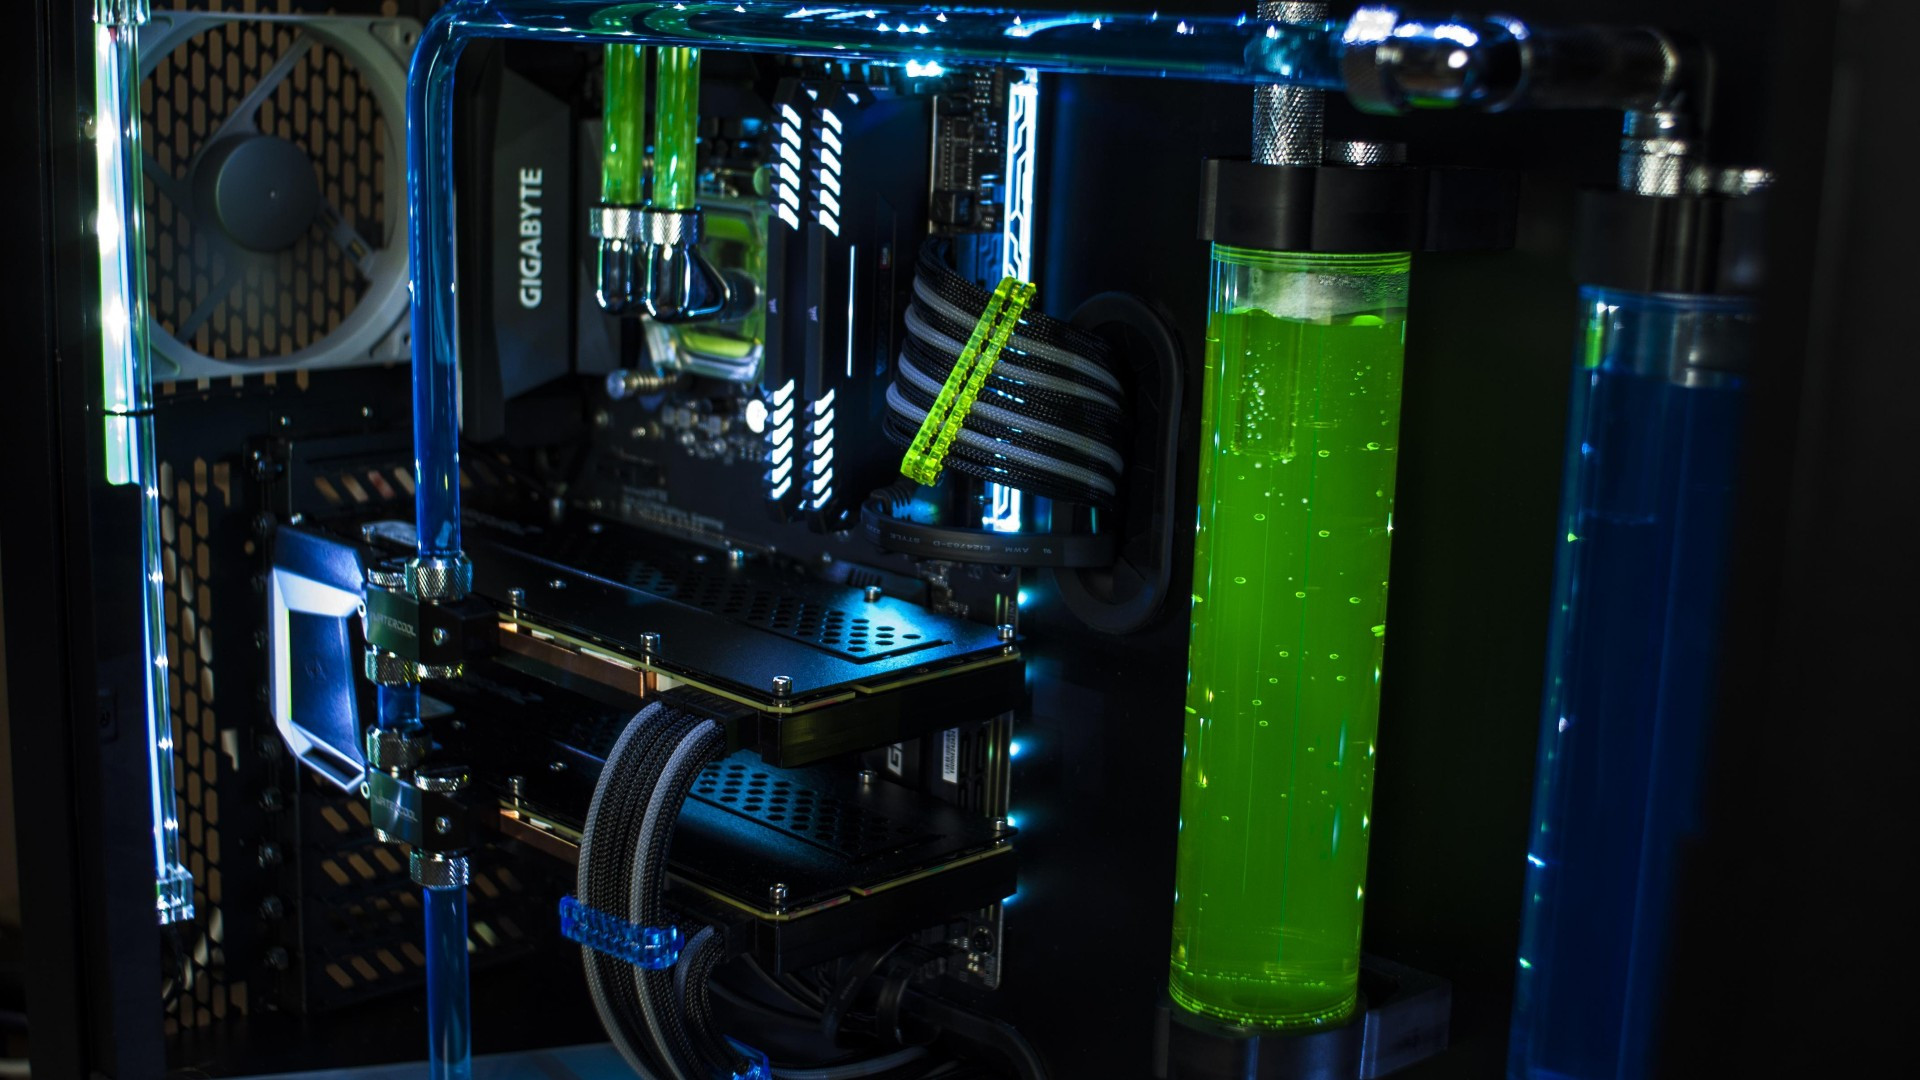 Download 1920x1080 Custom Water Cooling Green Liquid Pc Gaming Wallpapers For Widescreen Wallpapermaiden